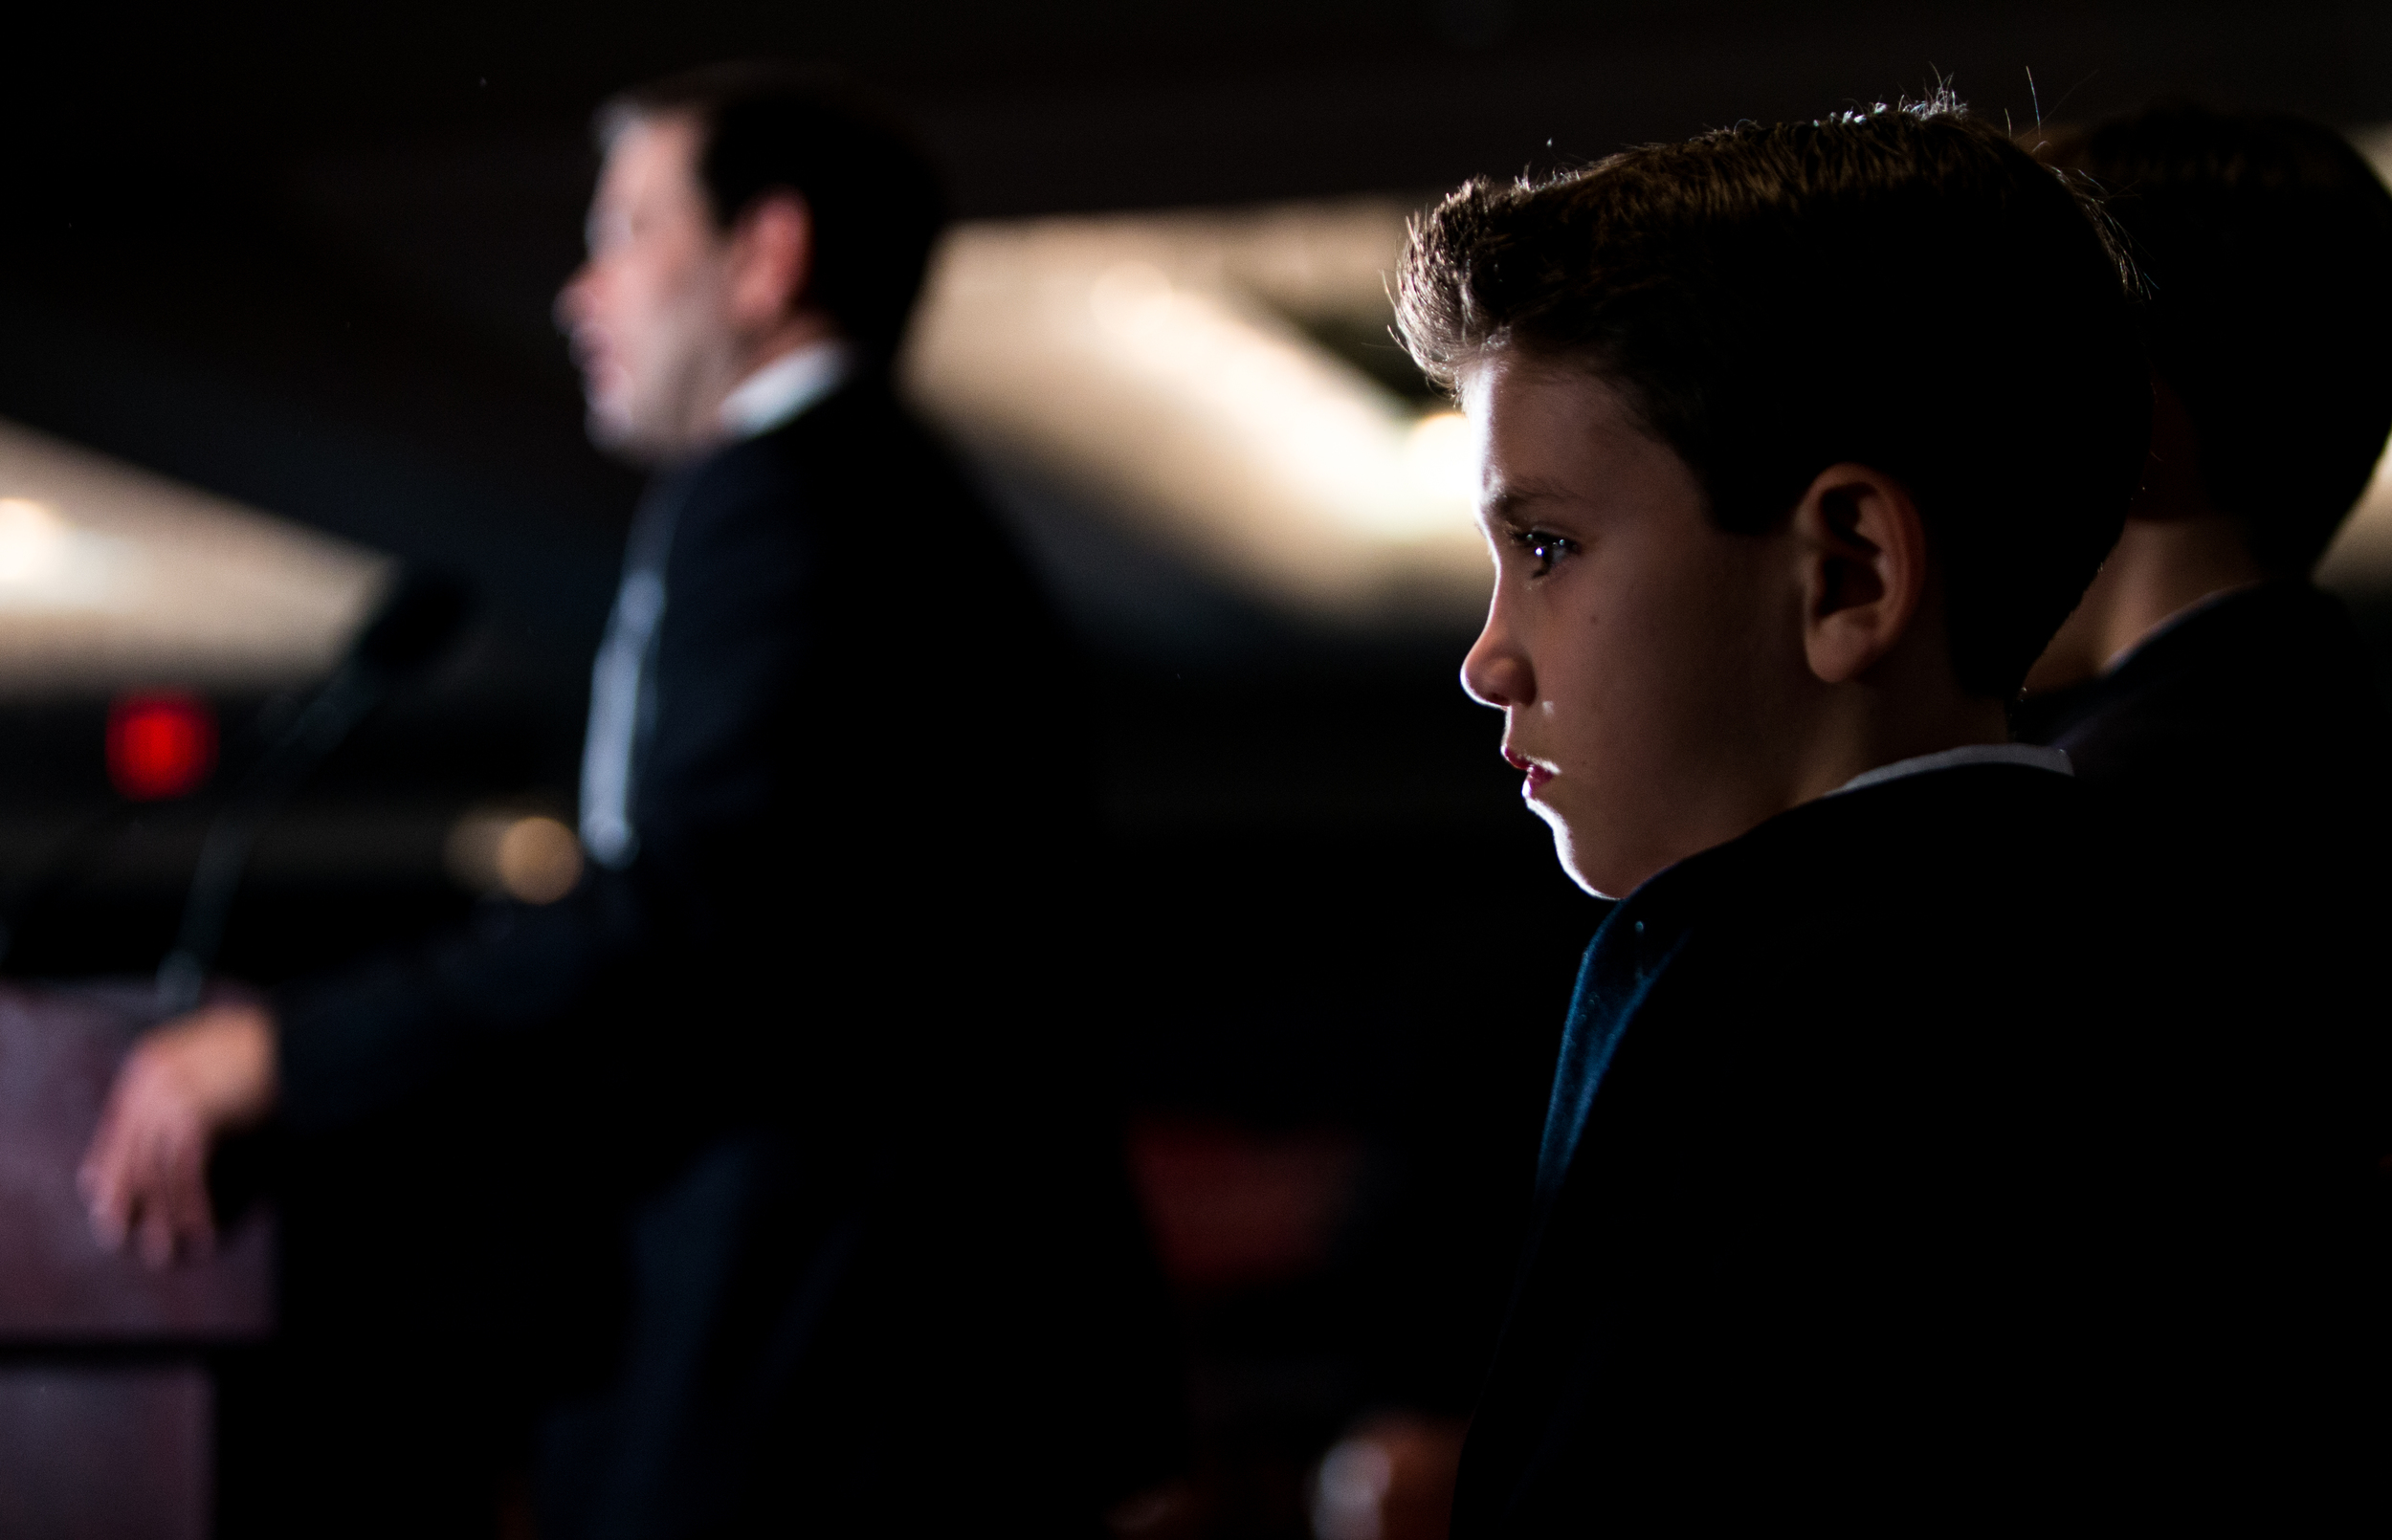 Manchester, NH, Feb. 9, 2016 - Marco Rubio's son Anthony Rubio stands on stage as his father speaks to hundreds of supporters at his New Hampshire Primary watch party at the Radisson Hotel. Photo by Alexandra Wimley